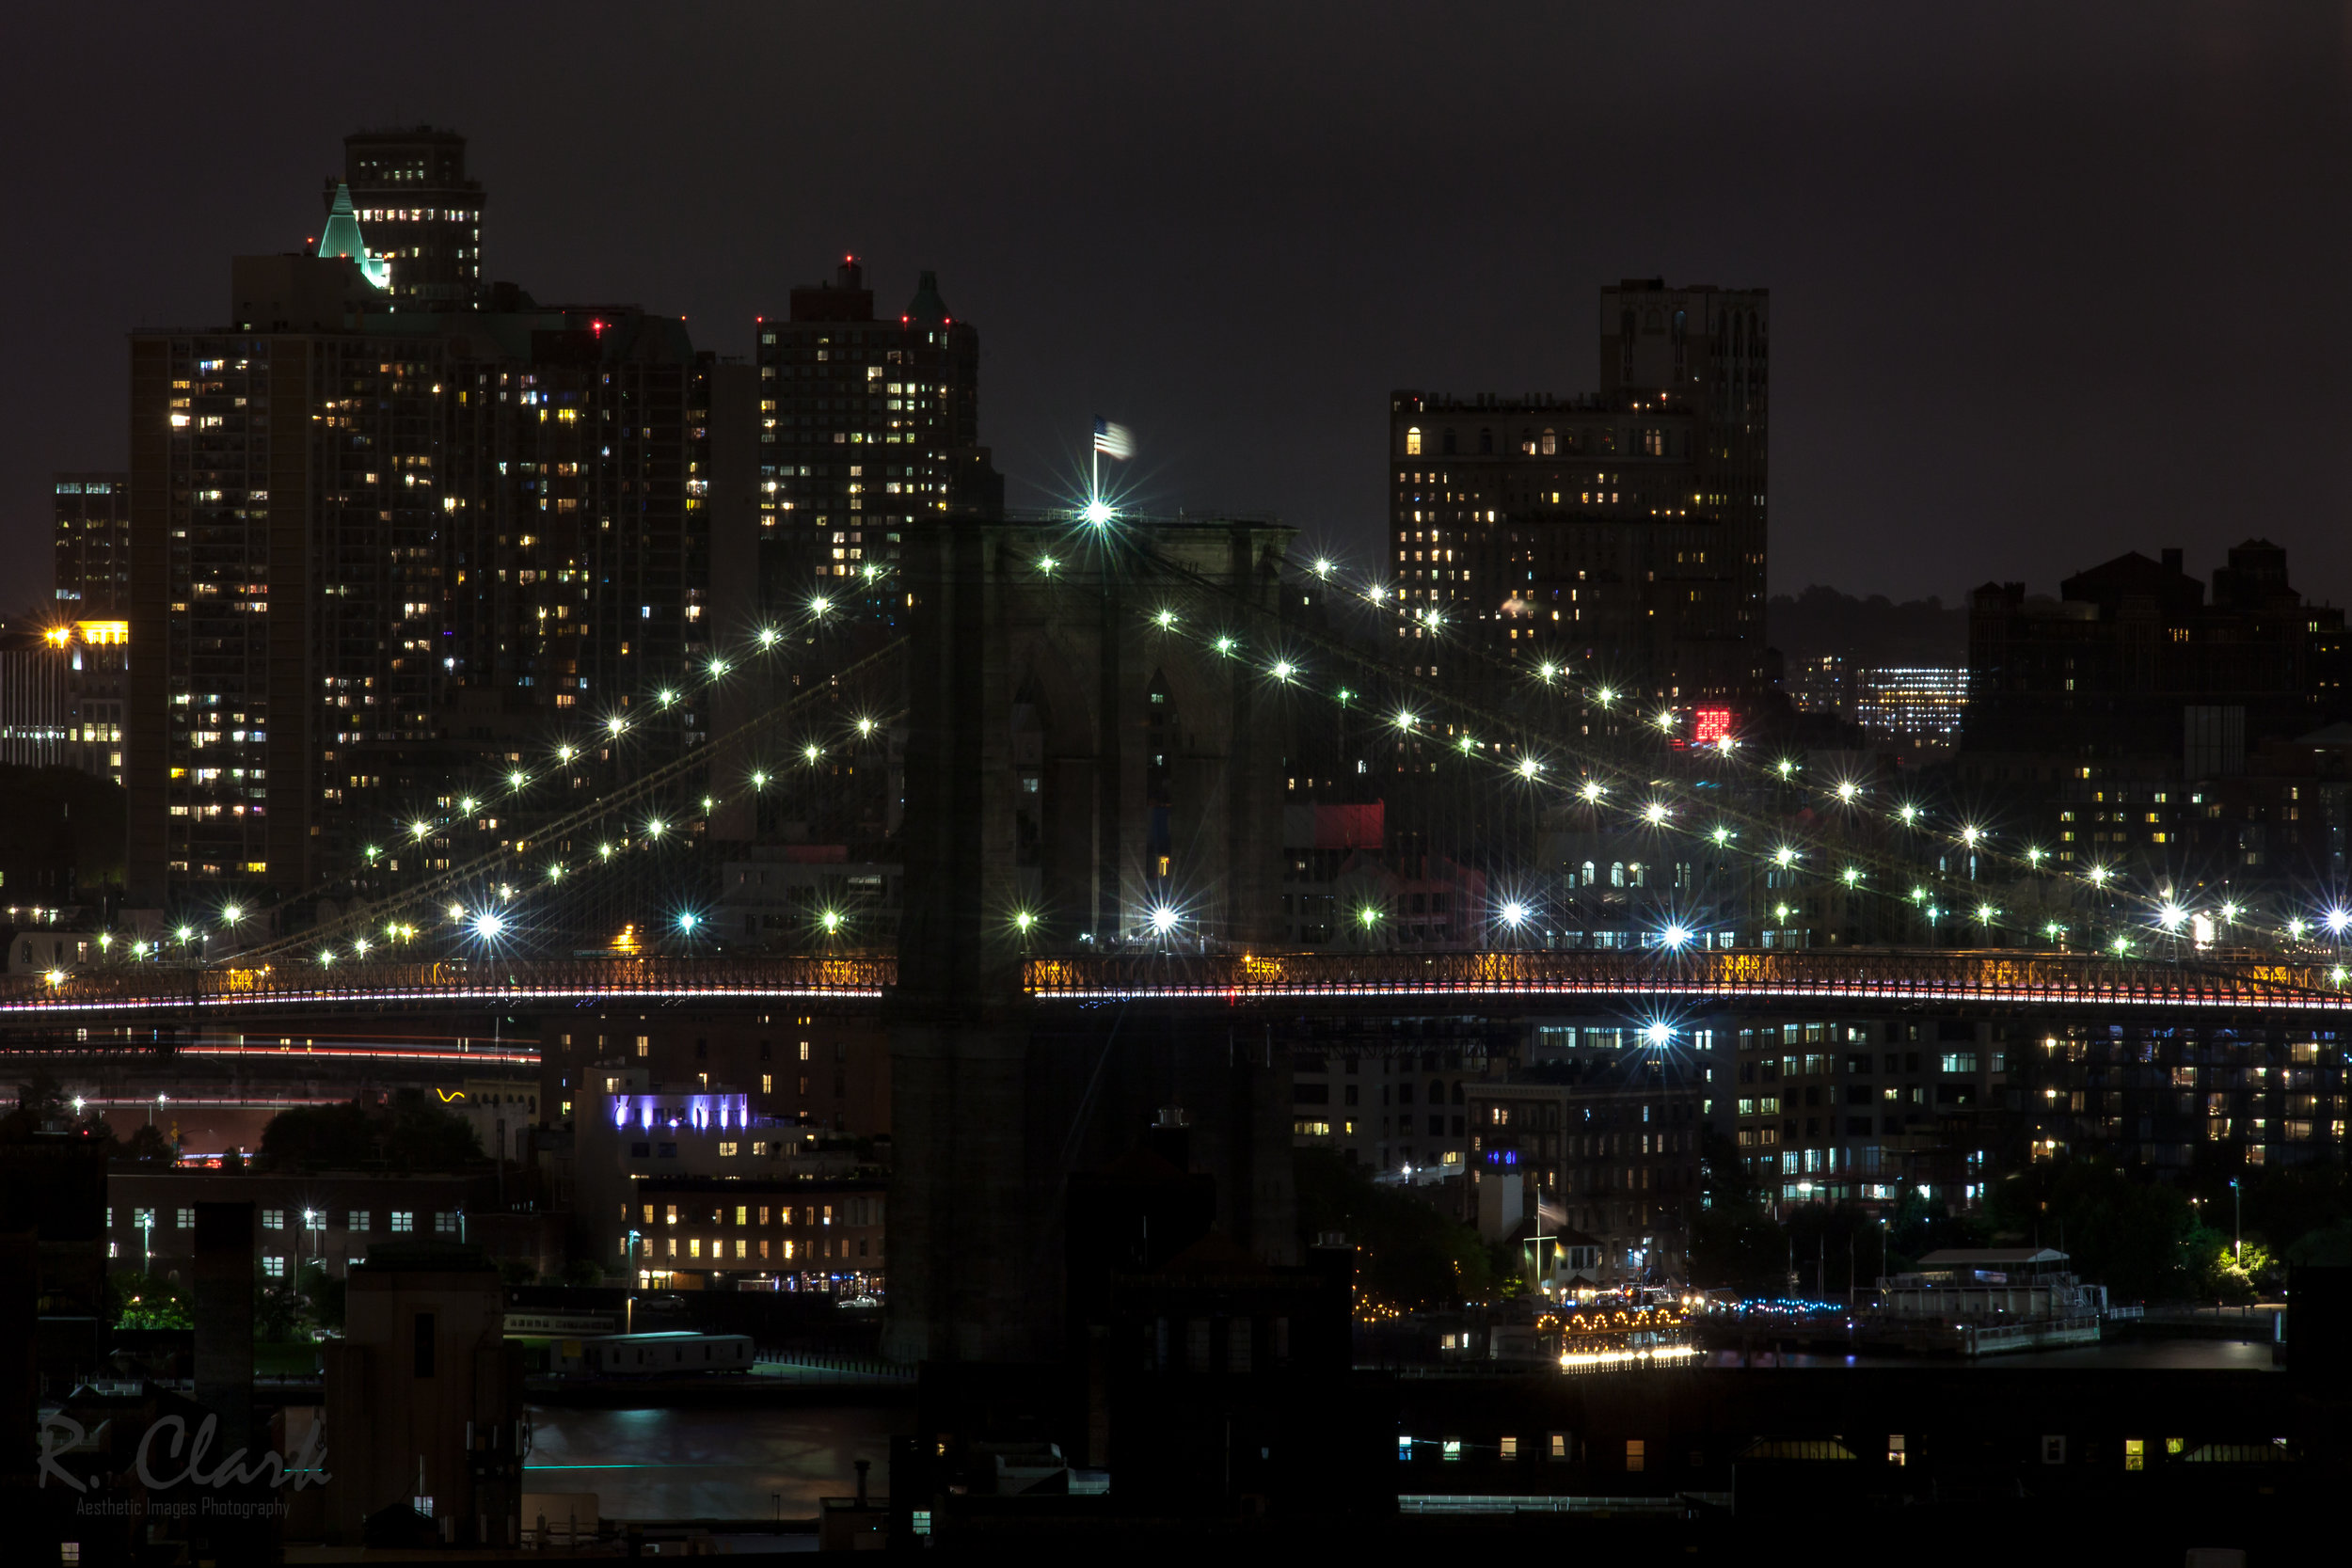 Rob Clark Brooklyn Bridge NYC